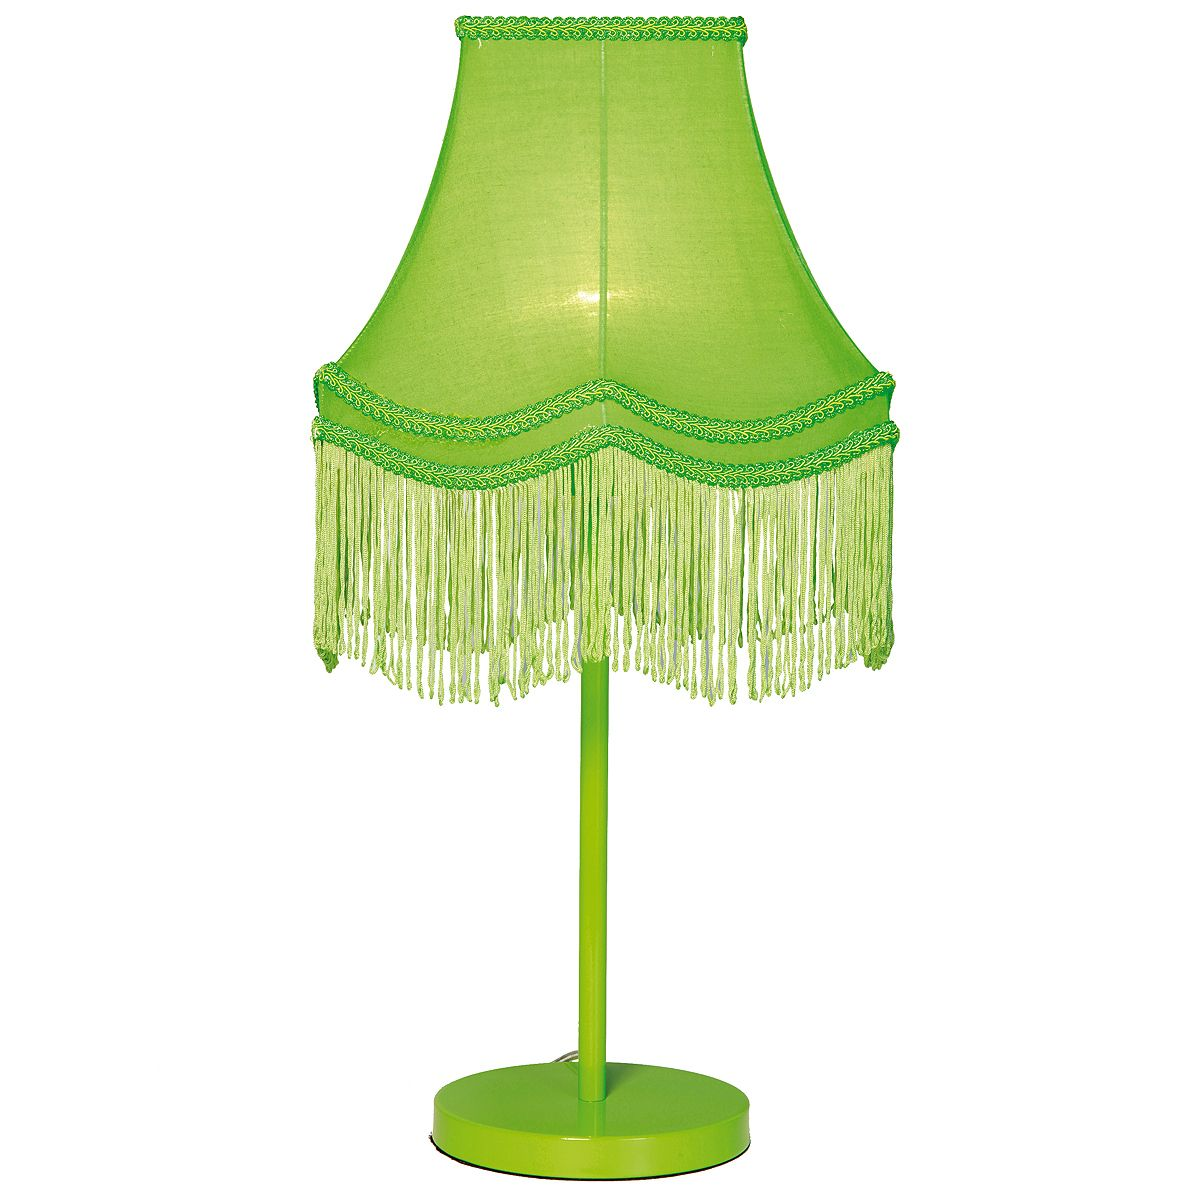 New fluoro fringe lime green table lamp let there be light fluoro fringe lime green table lamp aloadofball Image collections